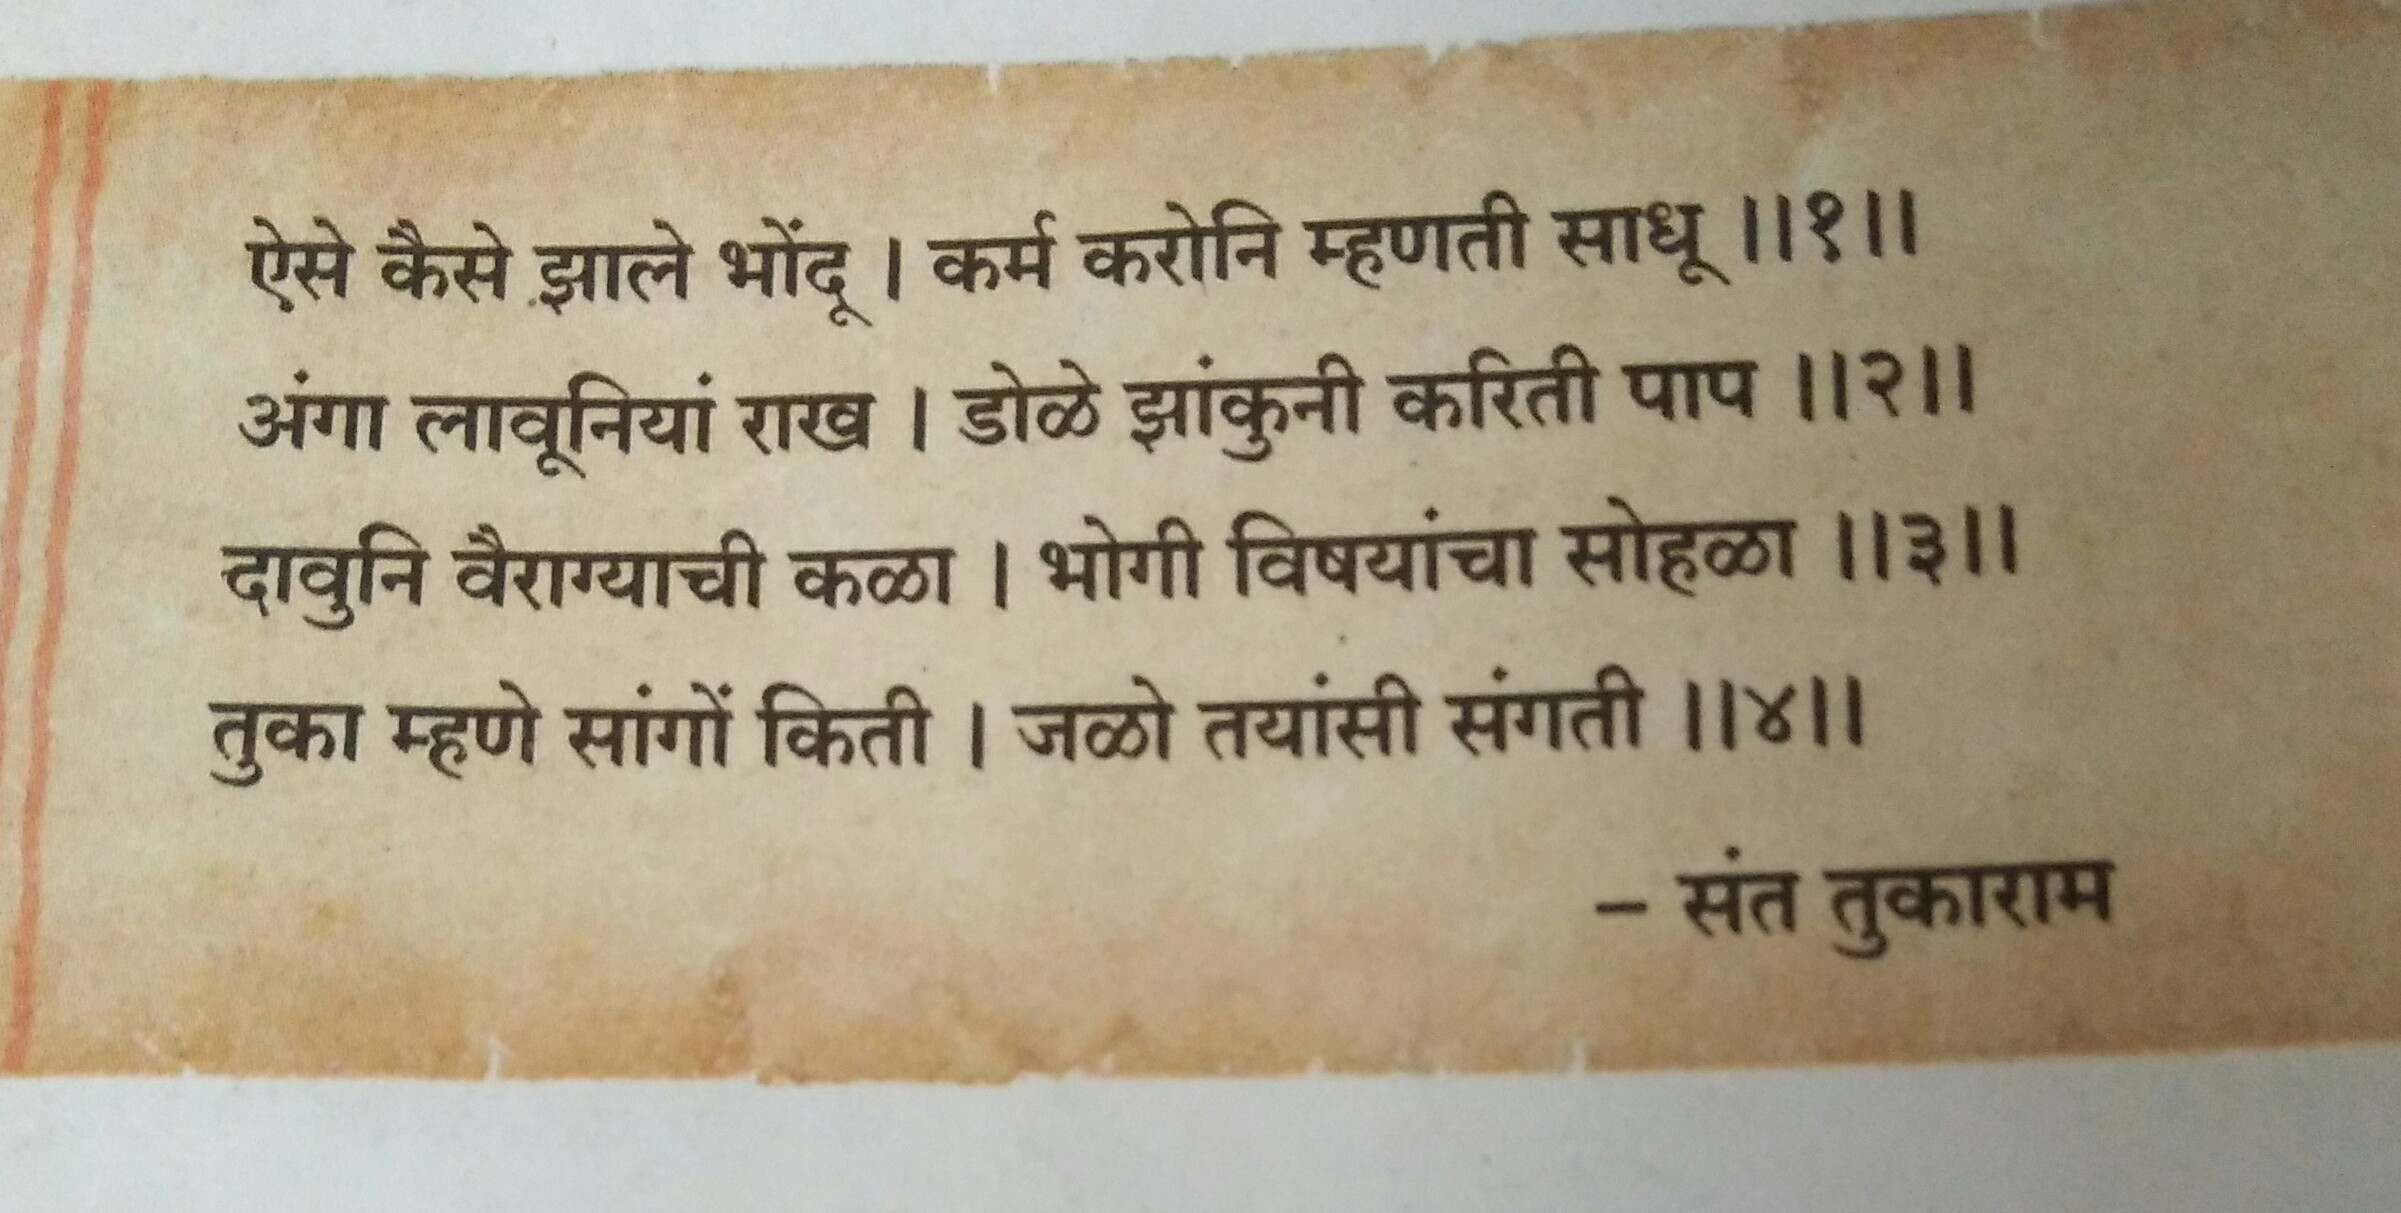 meaning of the santvani in english or marathi   Brainly.in